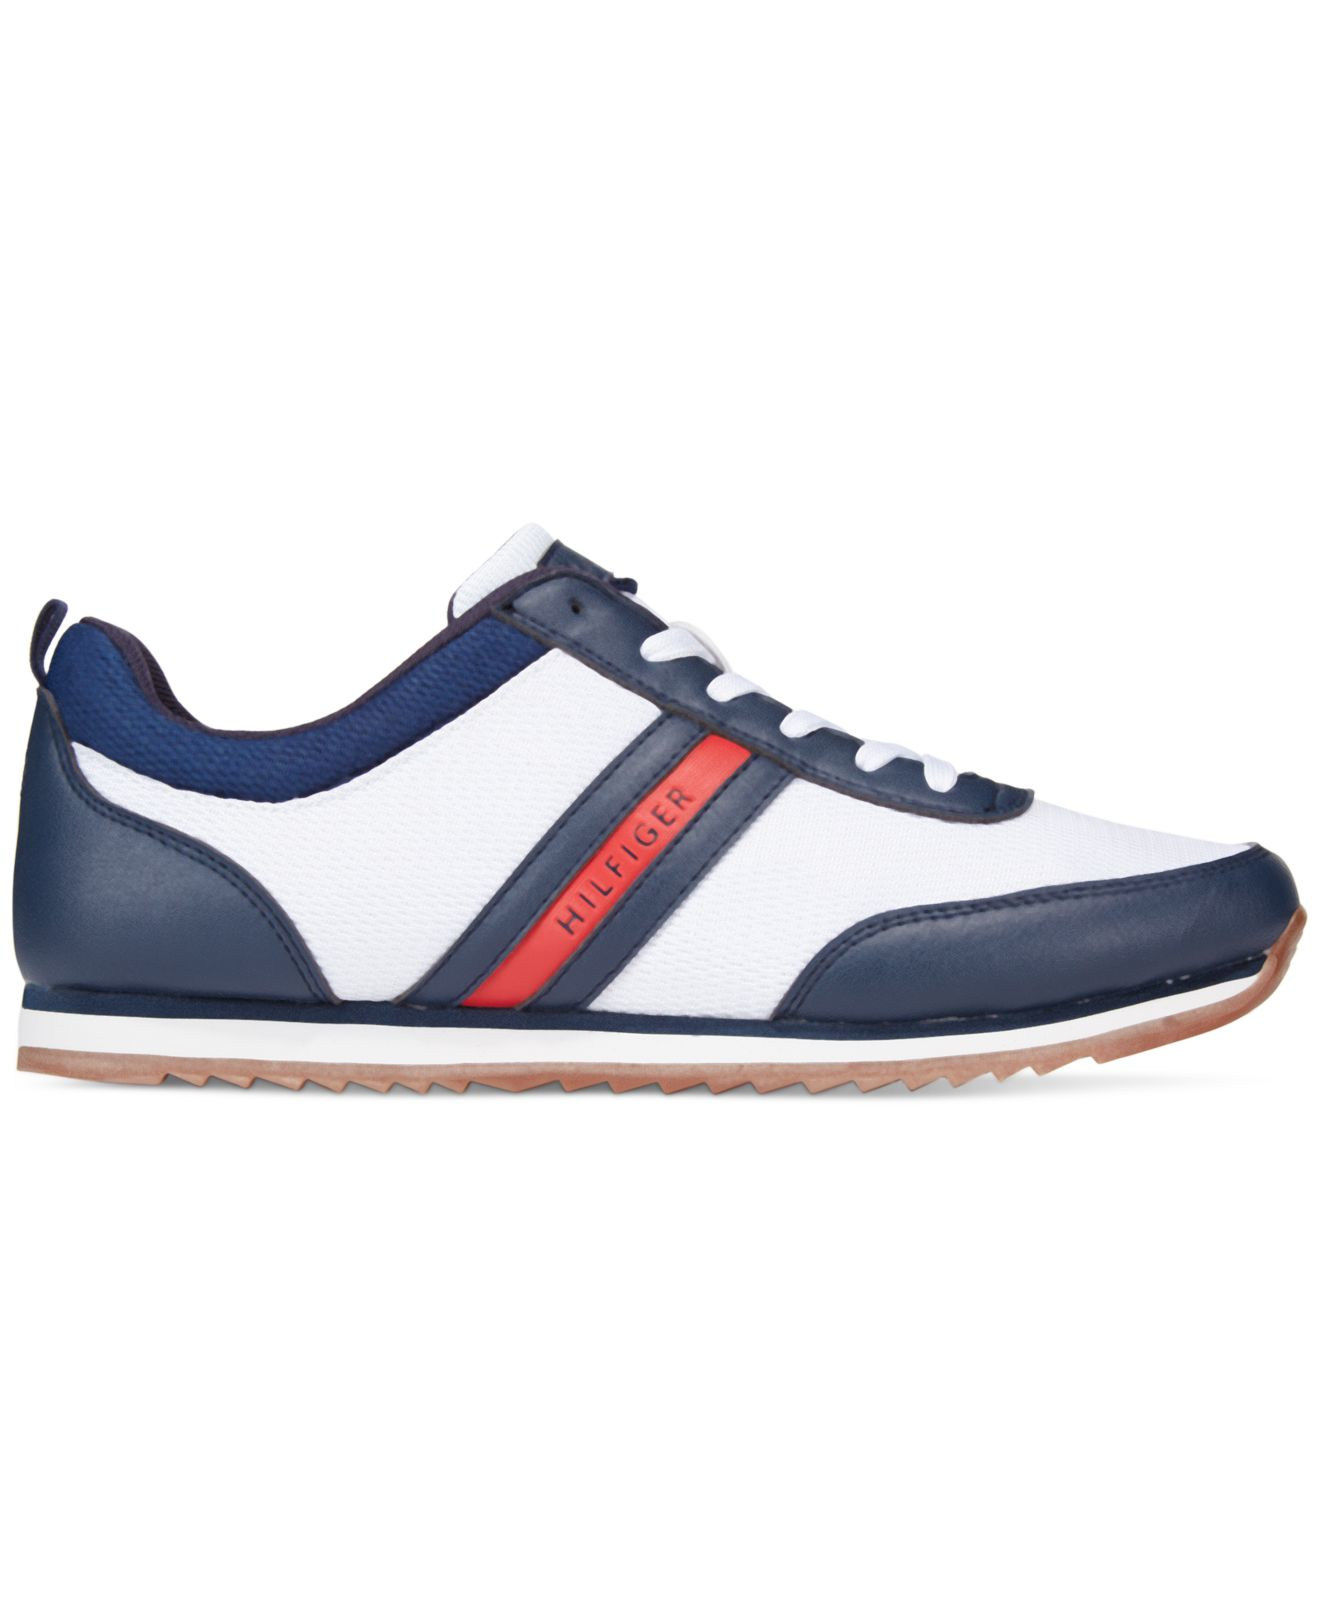 8a64c8c3745bf Lyst - Tommy Hilfiger Fonzie Sneakers in Blue for Men